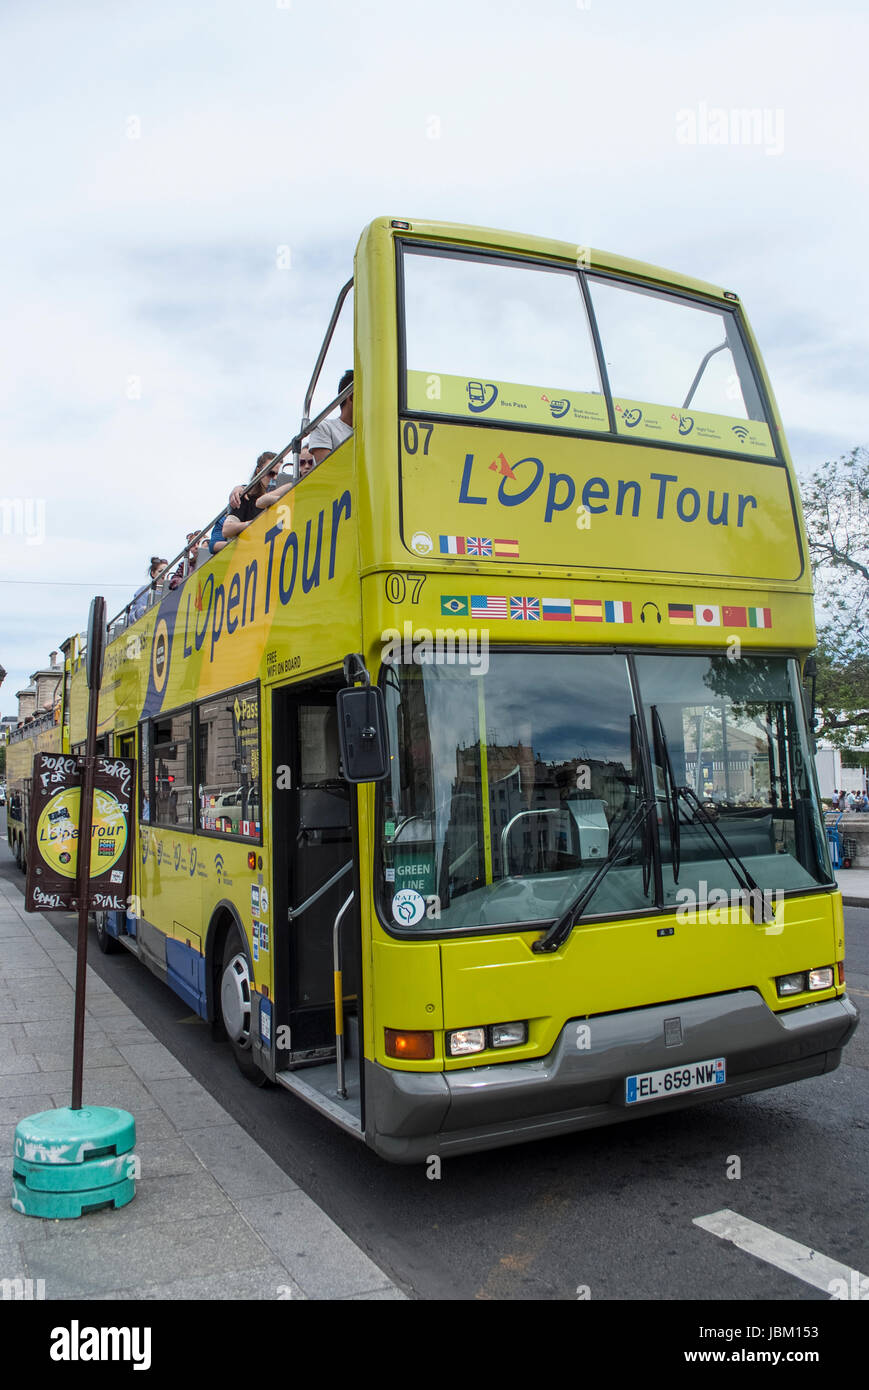 PARIS FRANCE OPEN TOUR BUS  OFFERING A WAY TO SEE THE MOST WELL KNOWN MONUMENTS OF THE CITY - PARIS BUS - PARIS - Stock Image